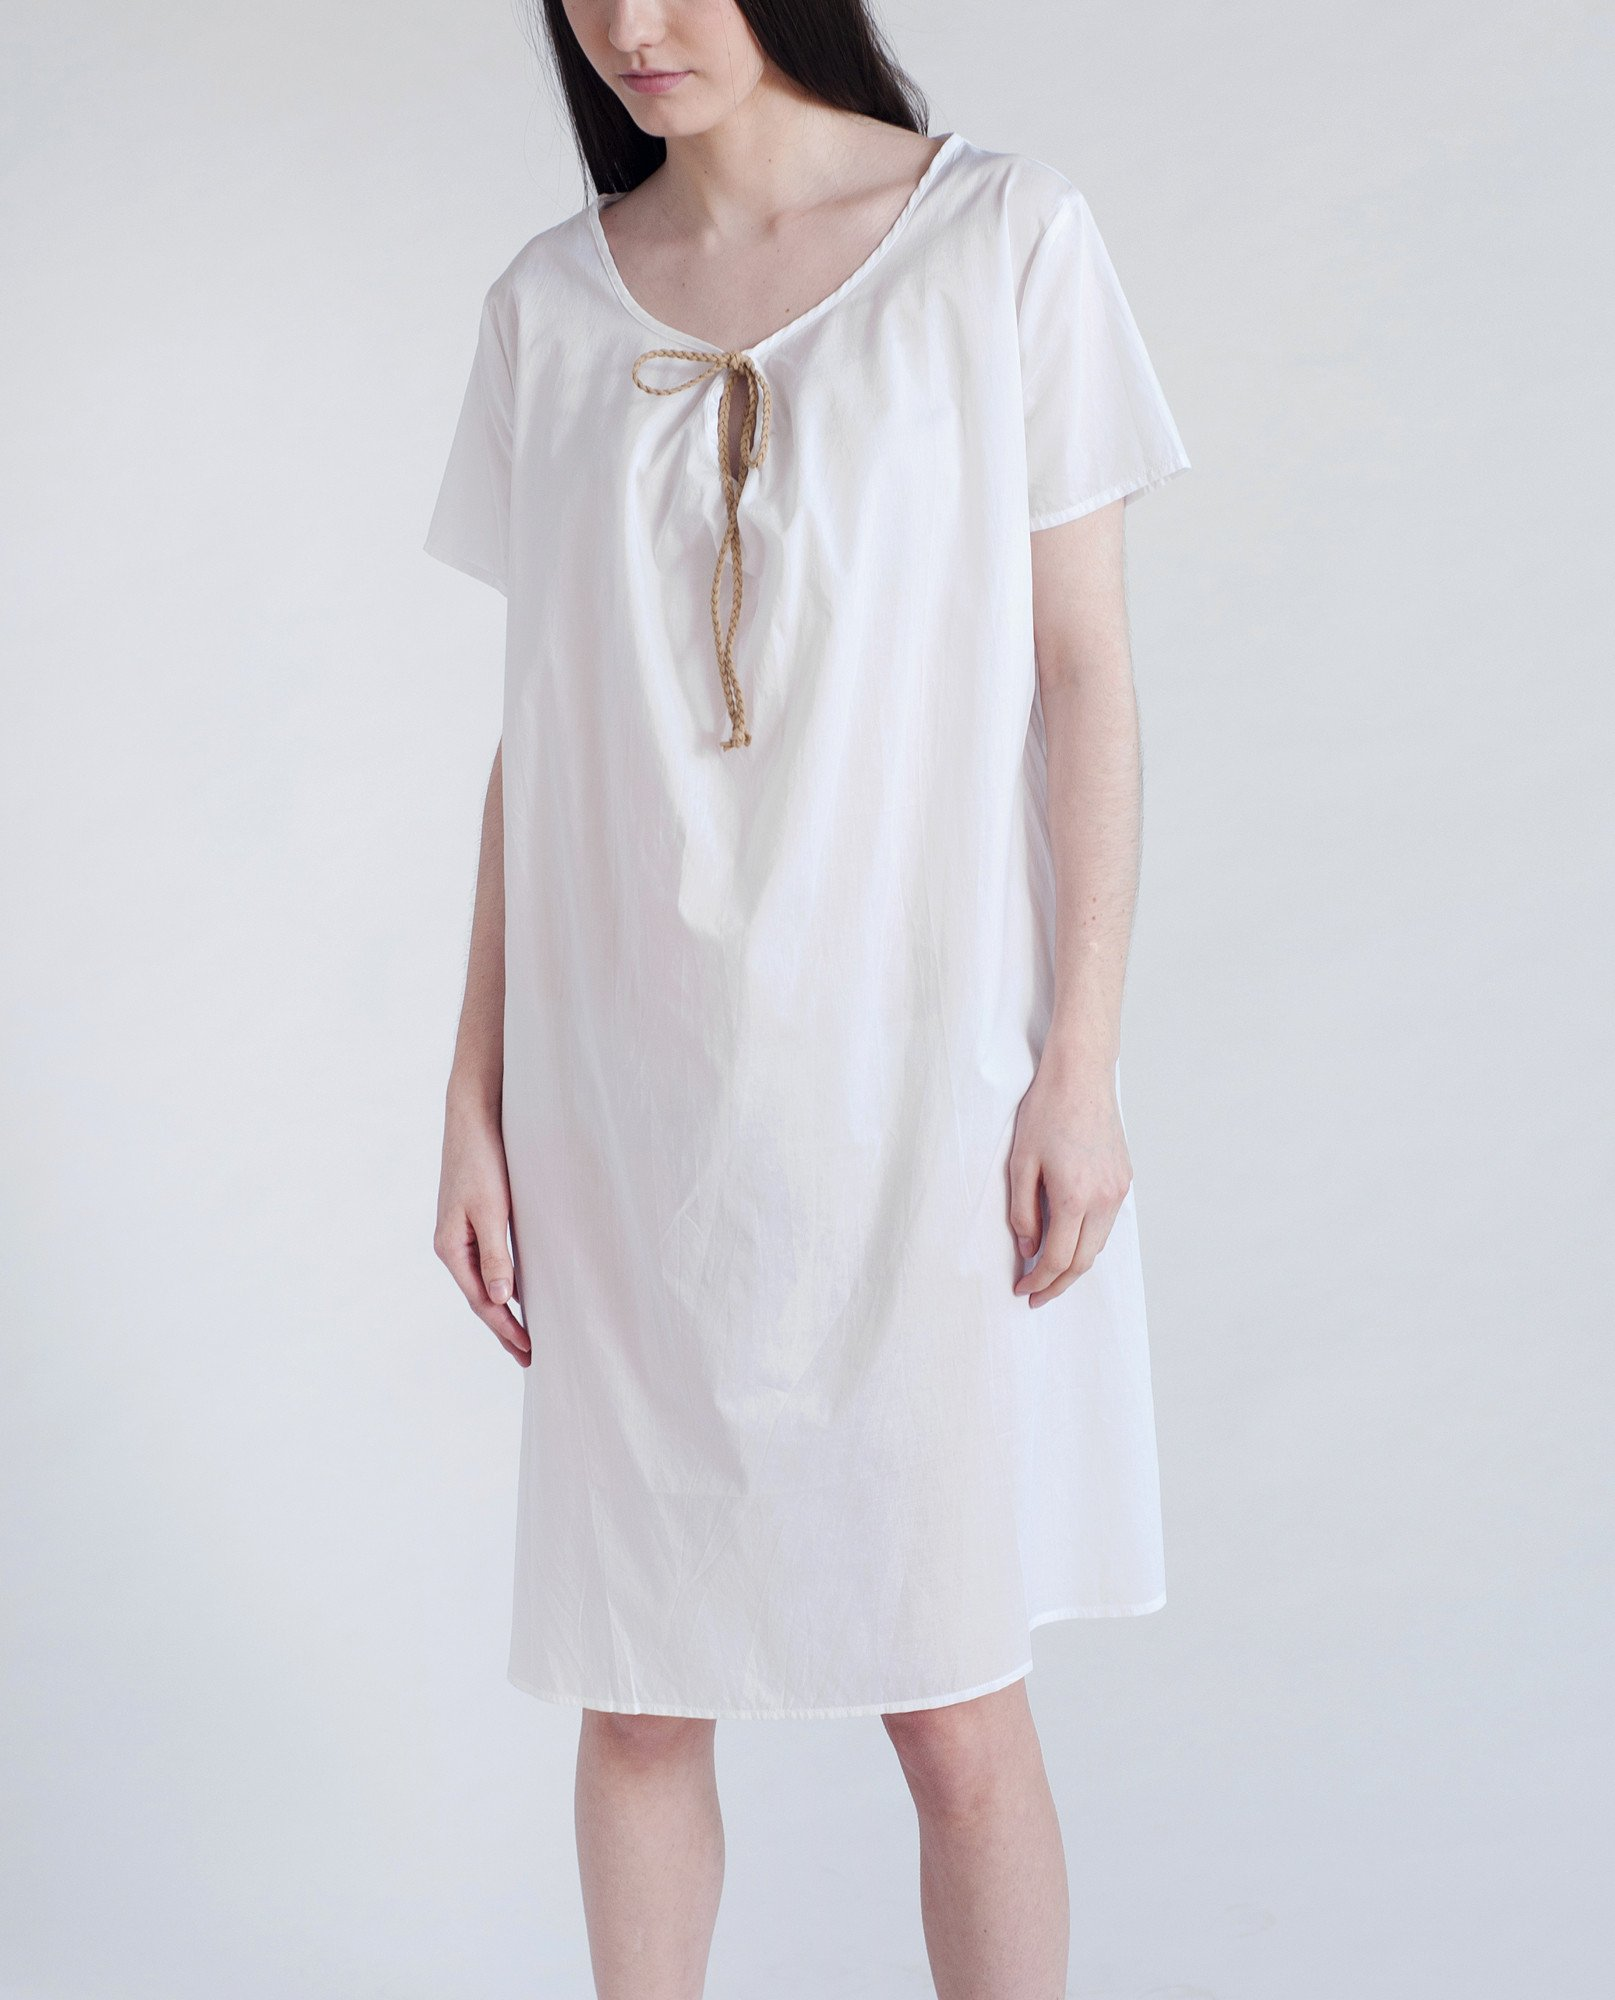 DANDELION Organic Cotton Dress In White from Beaumont Organic